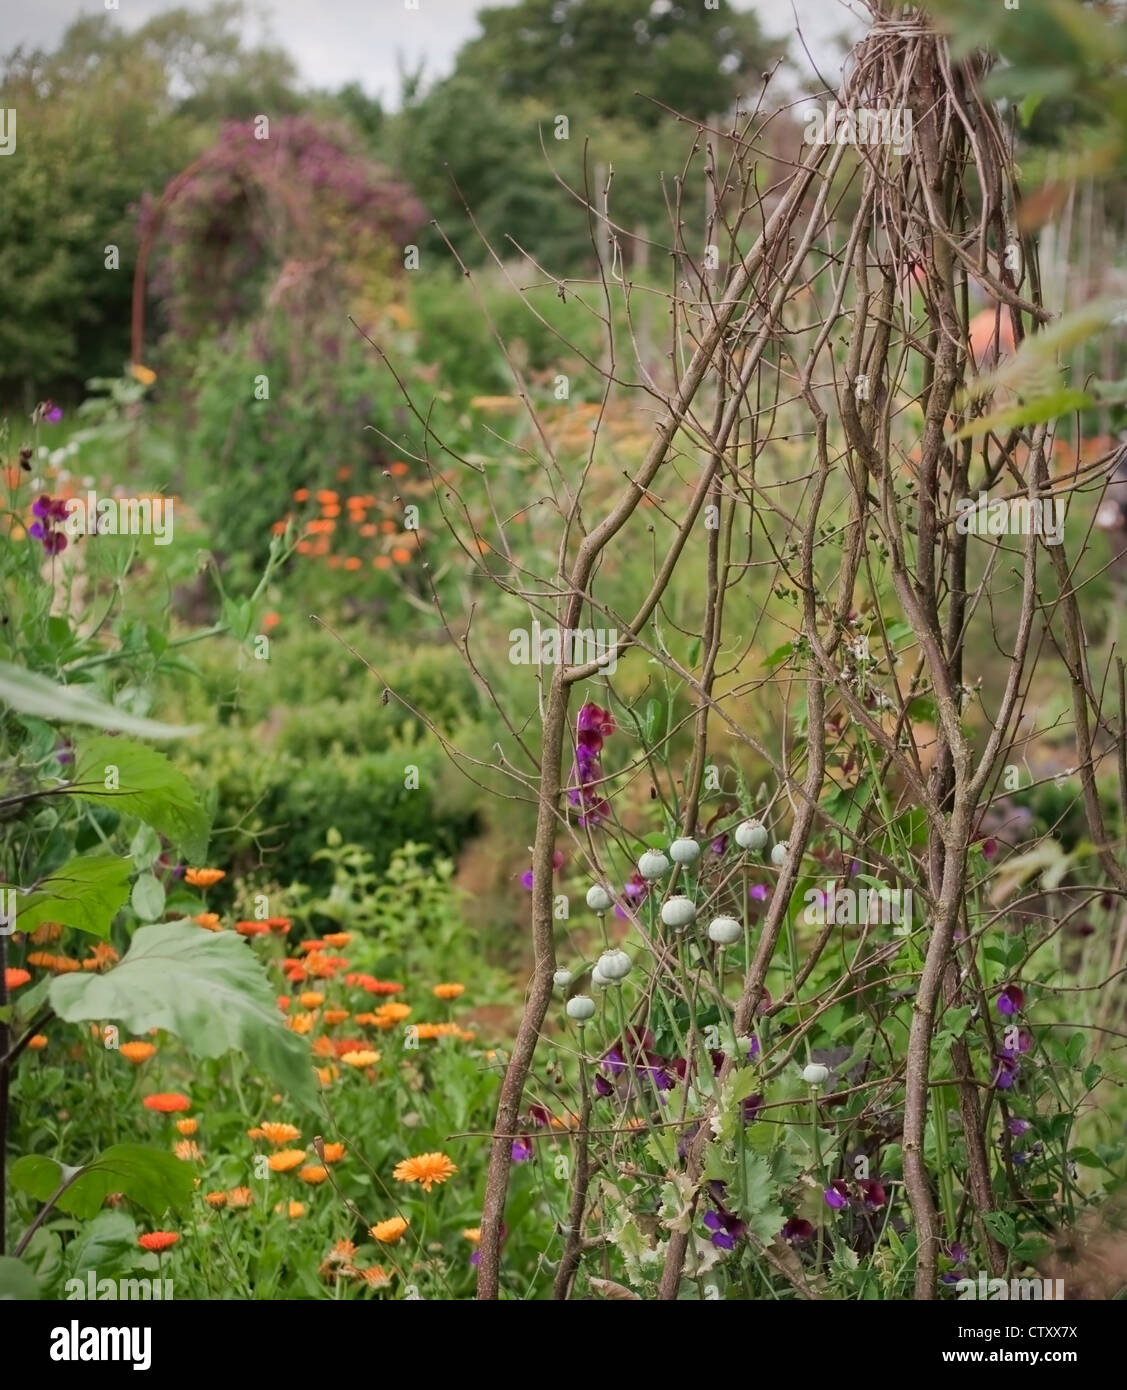 Annual sweet peas growing up natural wigwam of hazel twigs with annual ornamental poppy dried seedheads, Oxfordshire, - Stock Image